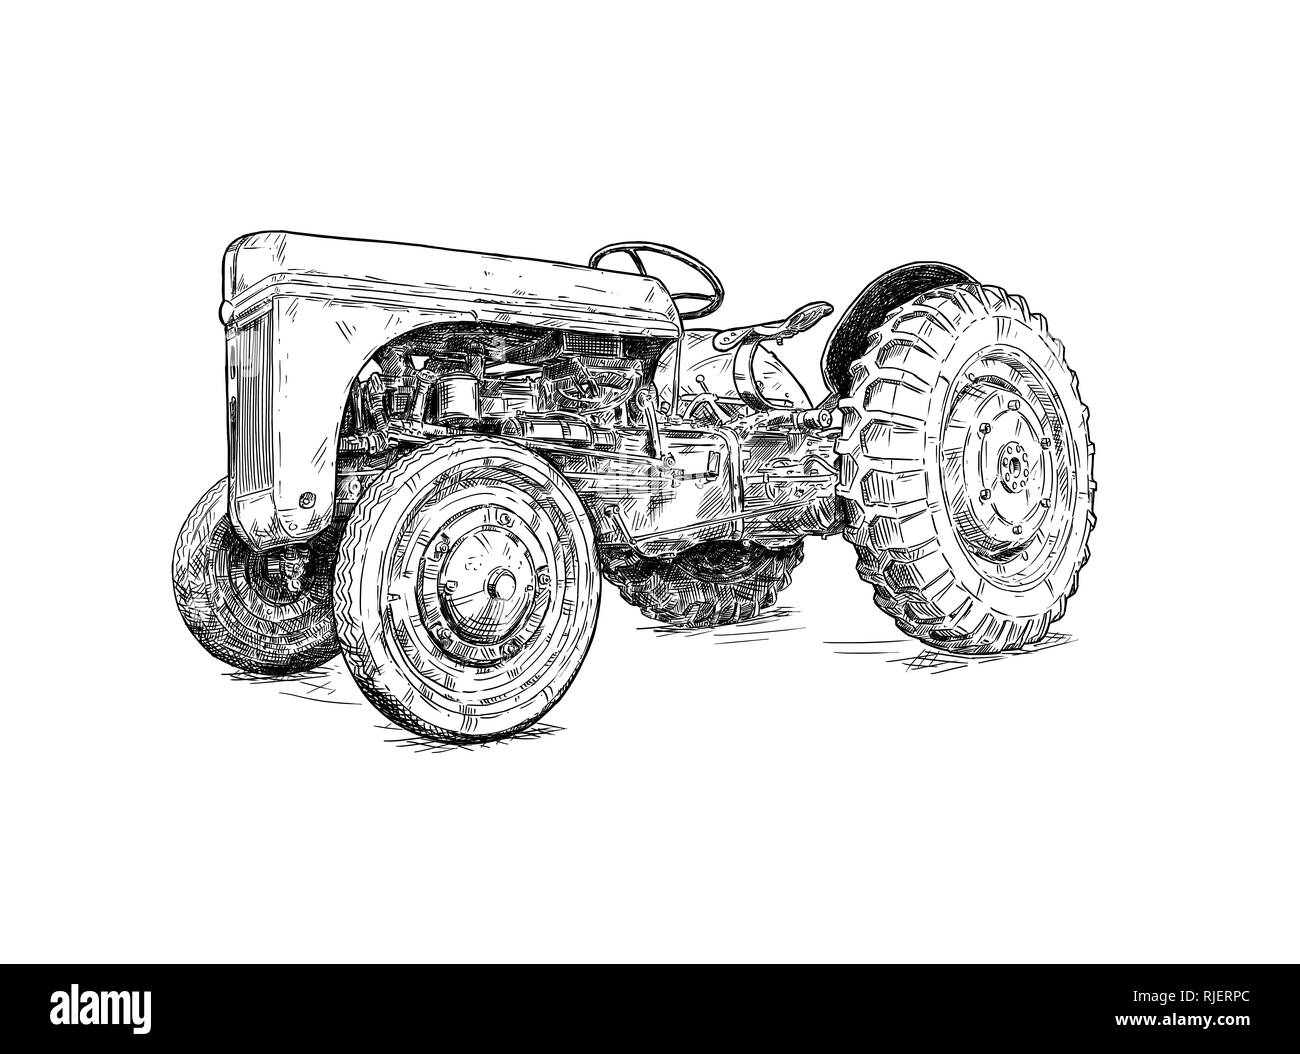 Cartoon or Comic Style Drawing of Old or Vintage Red Tractor - Stock Image